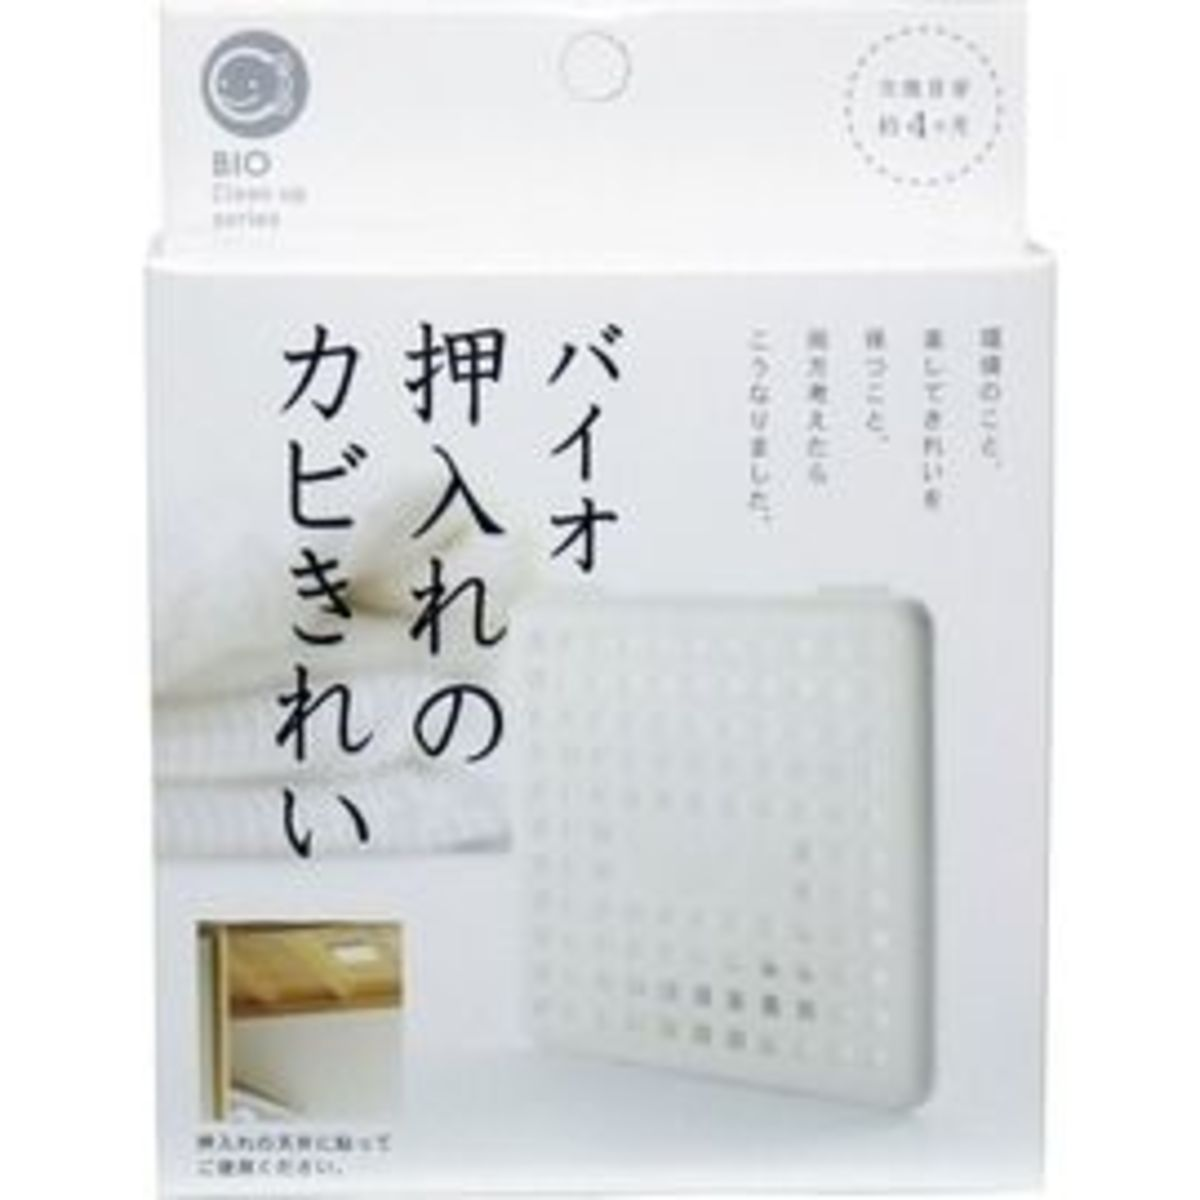 Clean Up Series Mold Remover Box (Cupboard)